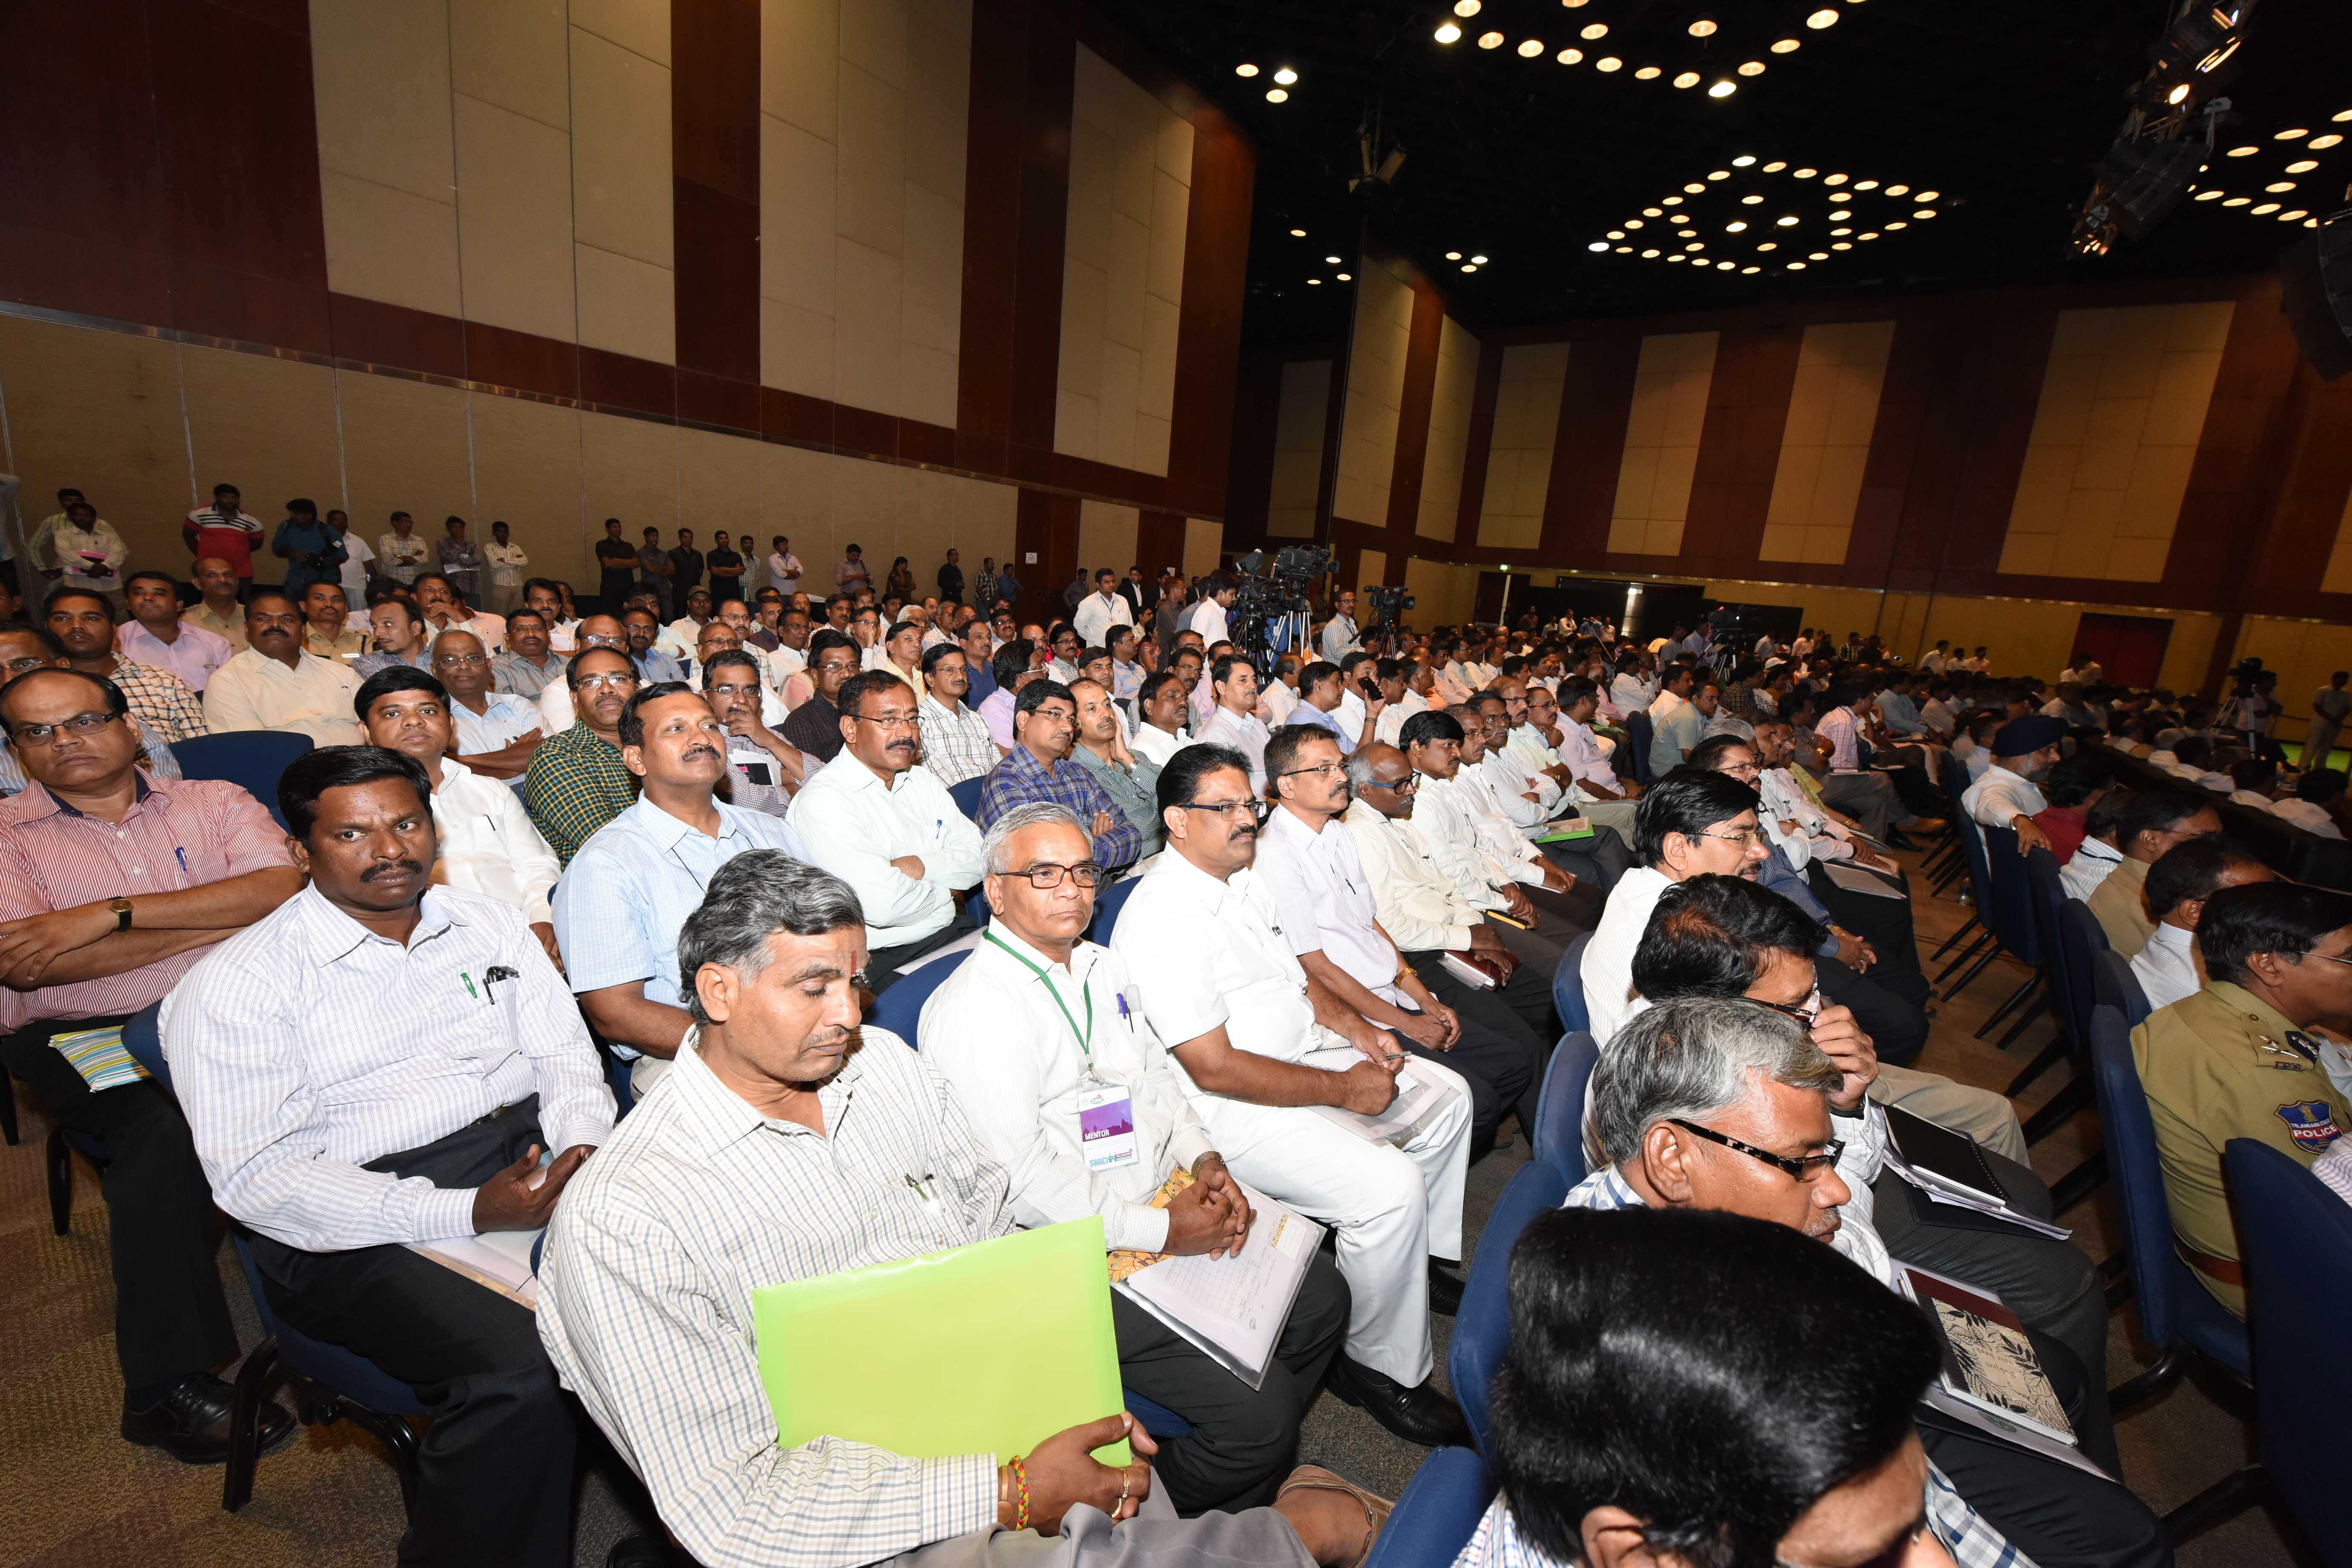 ESL Narasimhan, Honble Governor along with TS Chief Minister K Chandrasekhar Rao addressing SWACHH HYDERABAD Programme at HICC, Hyderabad on 22-05-2015.